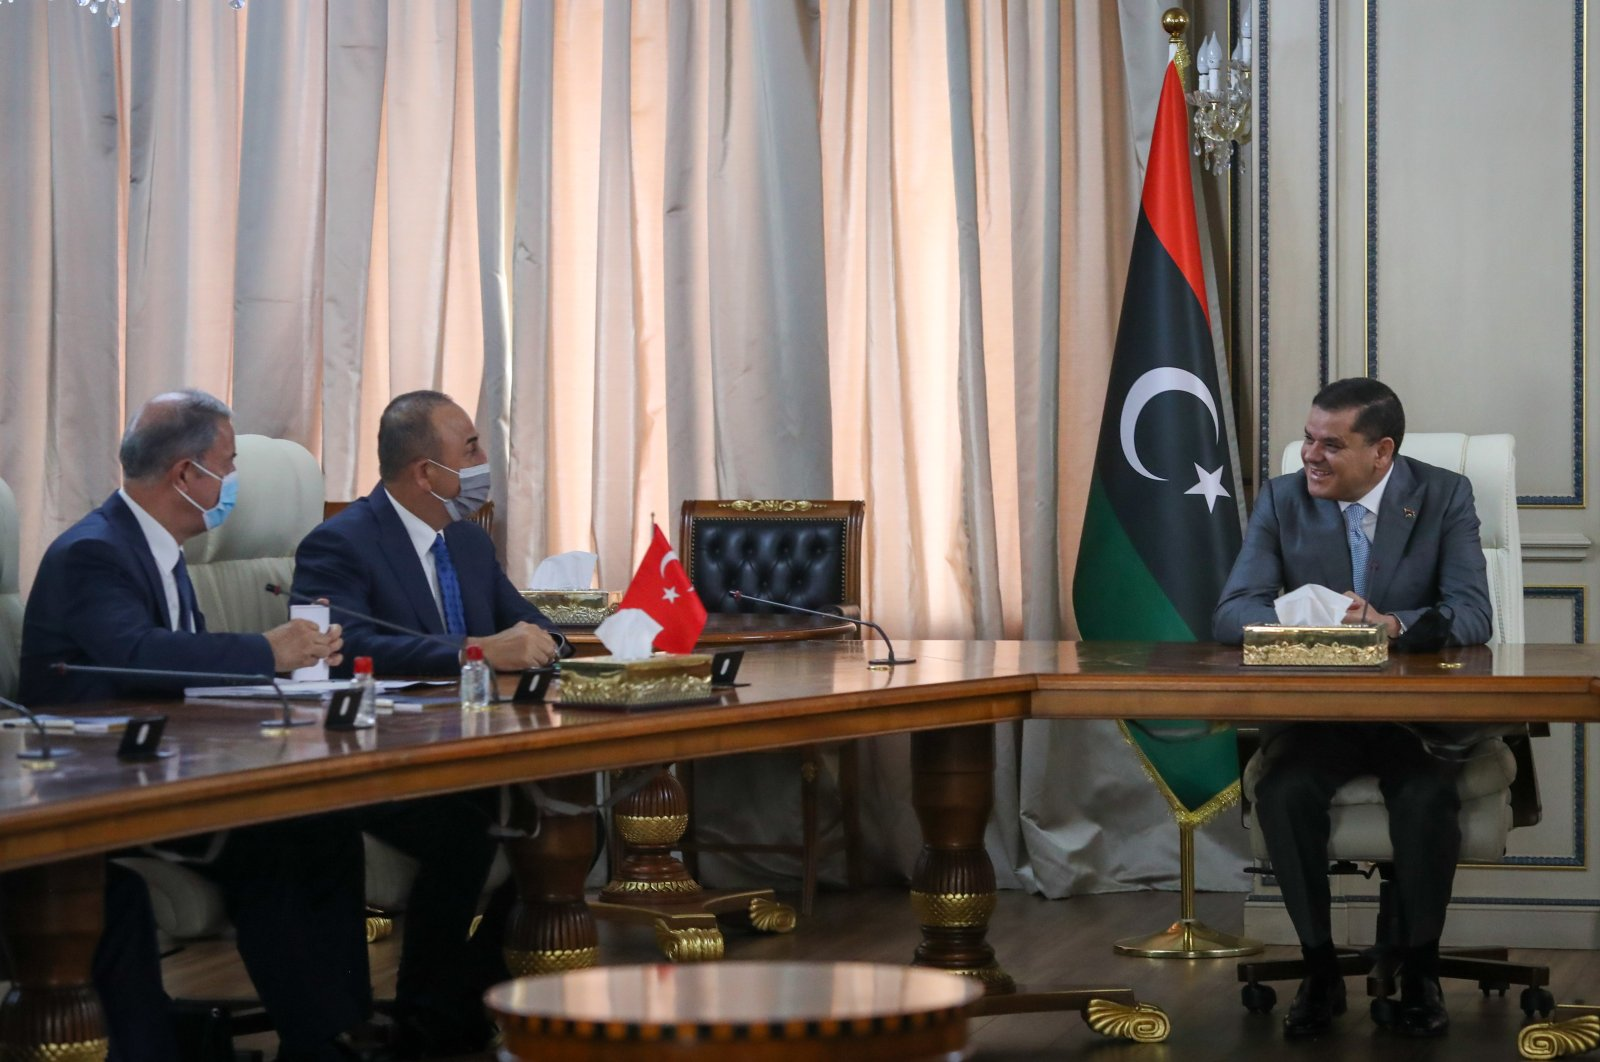 Foreign Minister Mevlüt Çavuşoğlu (C) and Defense Minister Hulusi Akar (L) attend a meeting with Libyan Prime Minister Abdul Hamid Mohammed  Dbeibah in Tripoli, Libya, May 4, 2021. (AA Photo)